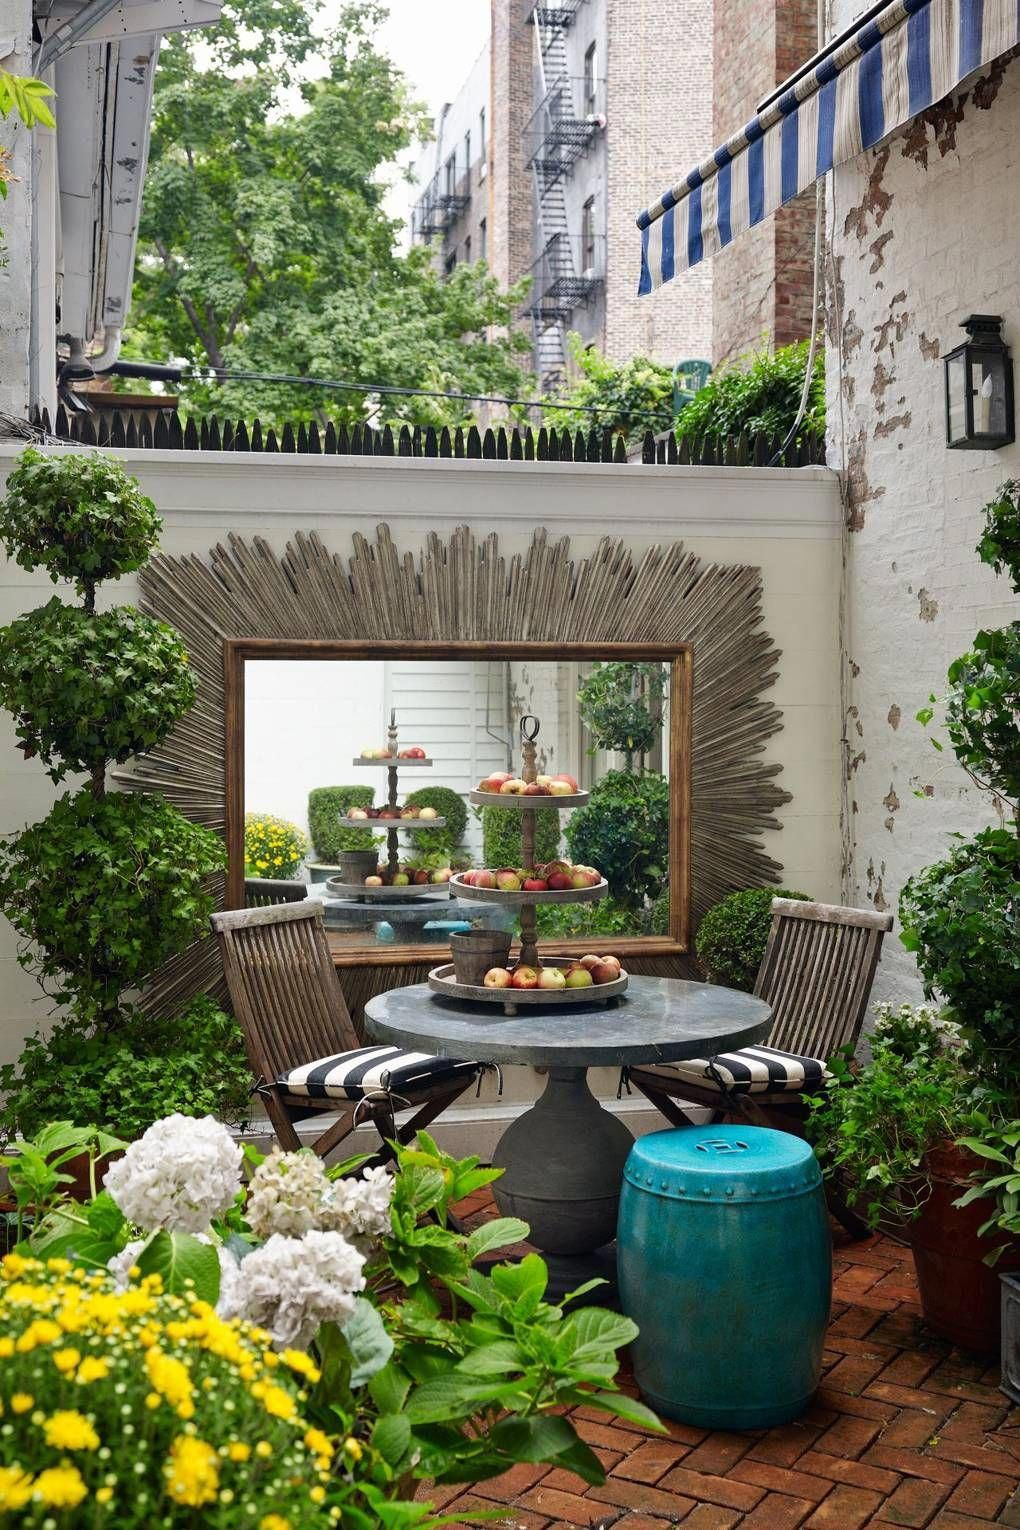 At Just 1 200 Square Feet This Is The Second Smallest House In Manhattan When Two Small Courtyard Gardens Apartment Patio Gardens Small Cottage Garden Ideas